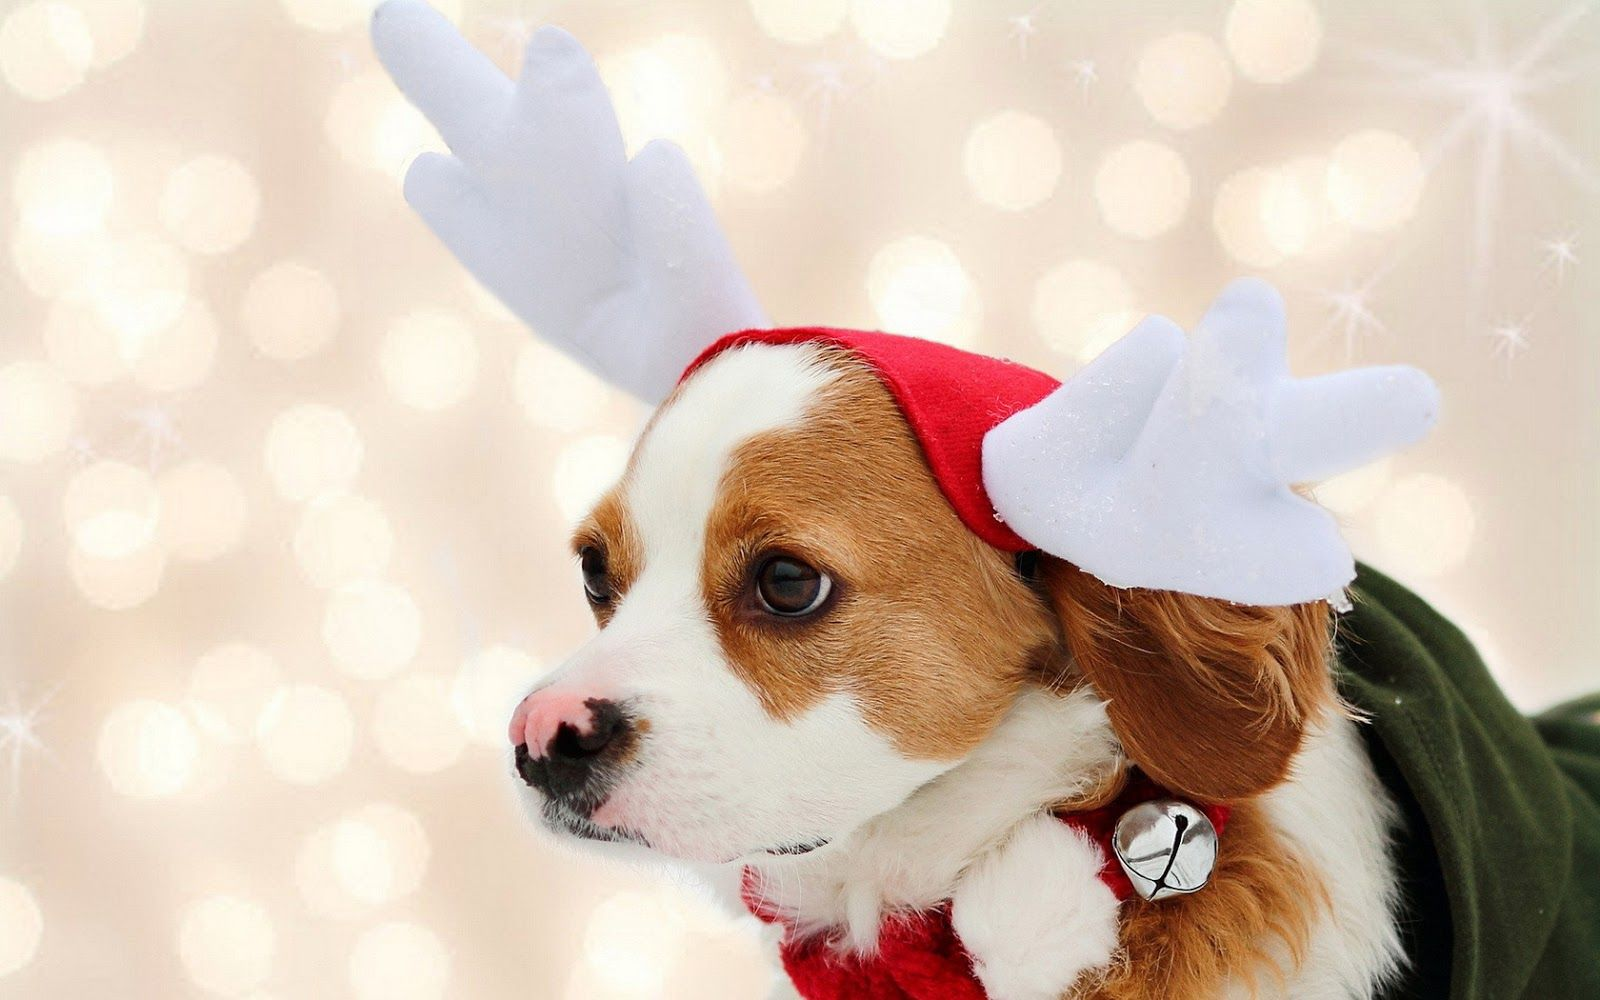 Free Christmas Puppy Wallpaper High Quality Resolution Funny Dog Pictures Christmas Dog Christmas Animals